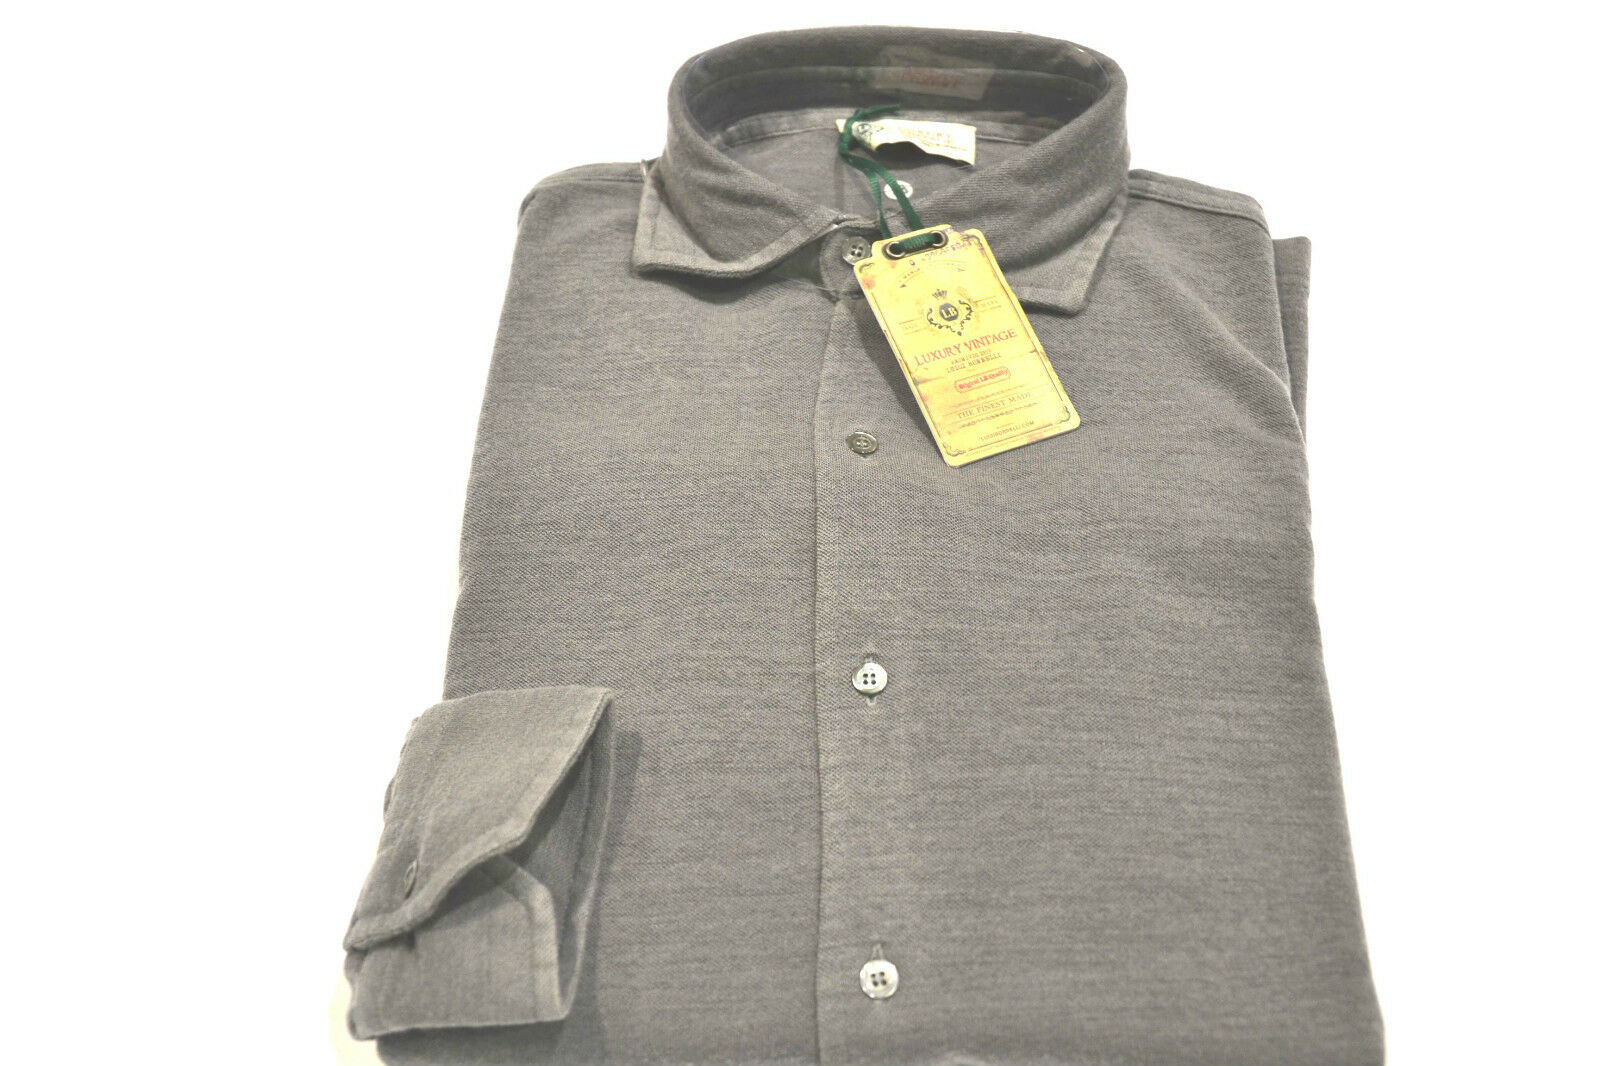 NEW LUIGI BORRELLI Luxury Napoli Sweater  Polo Wool Size L Us 52 Eu